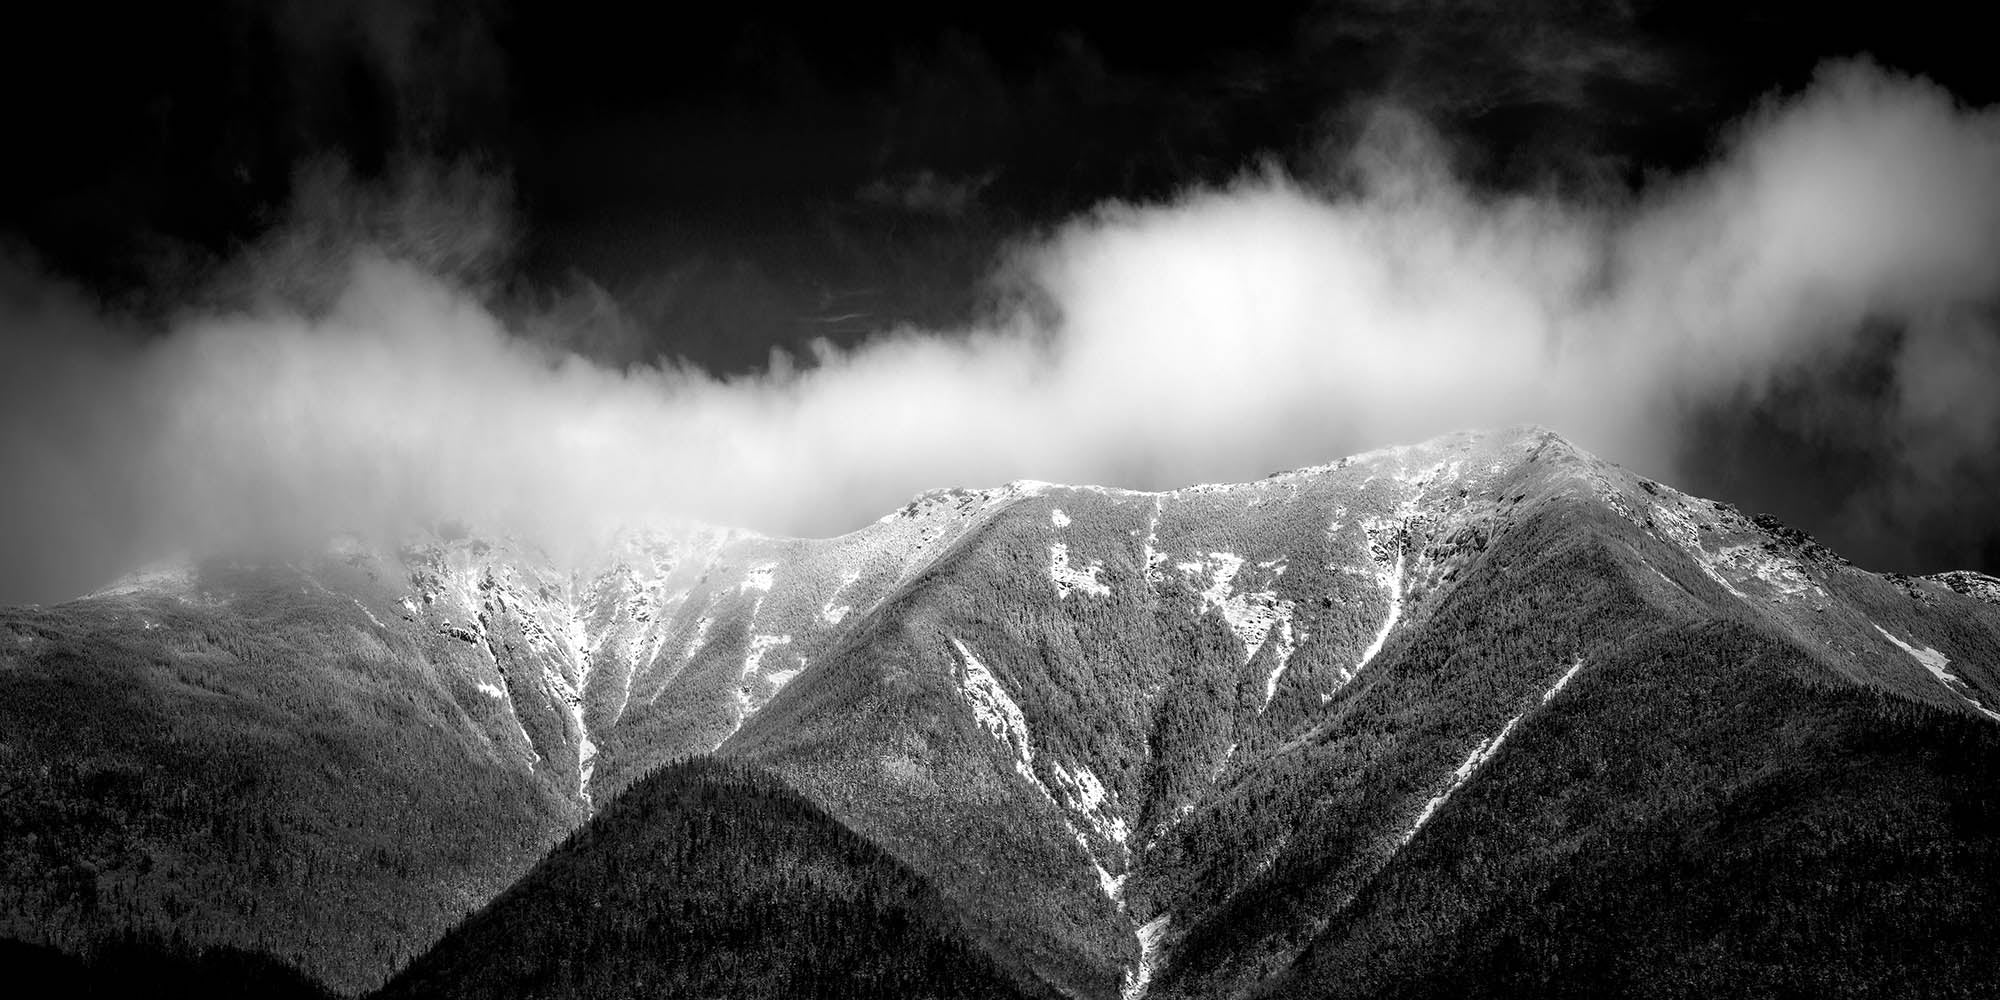 Winter storm clouds on Franconia Ridge - White Mountains, New Hampshire